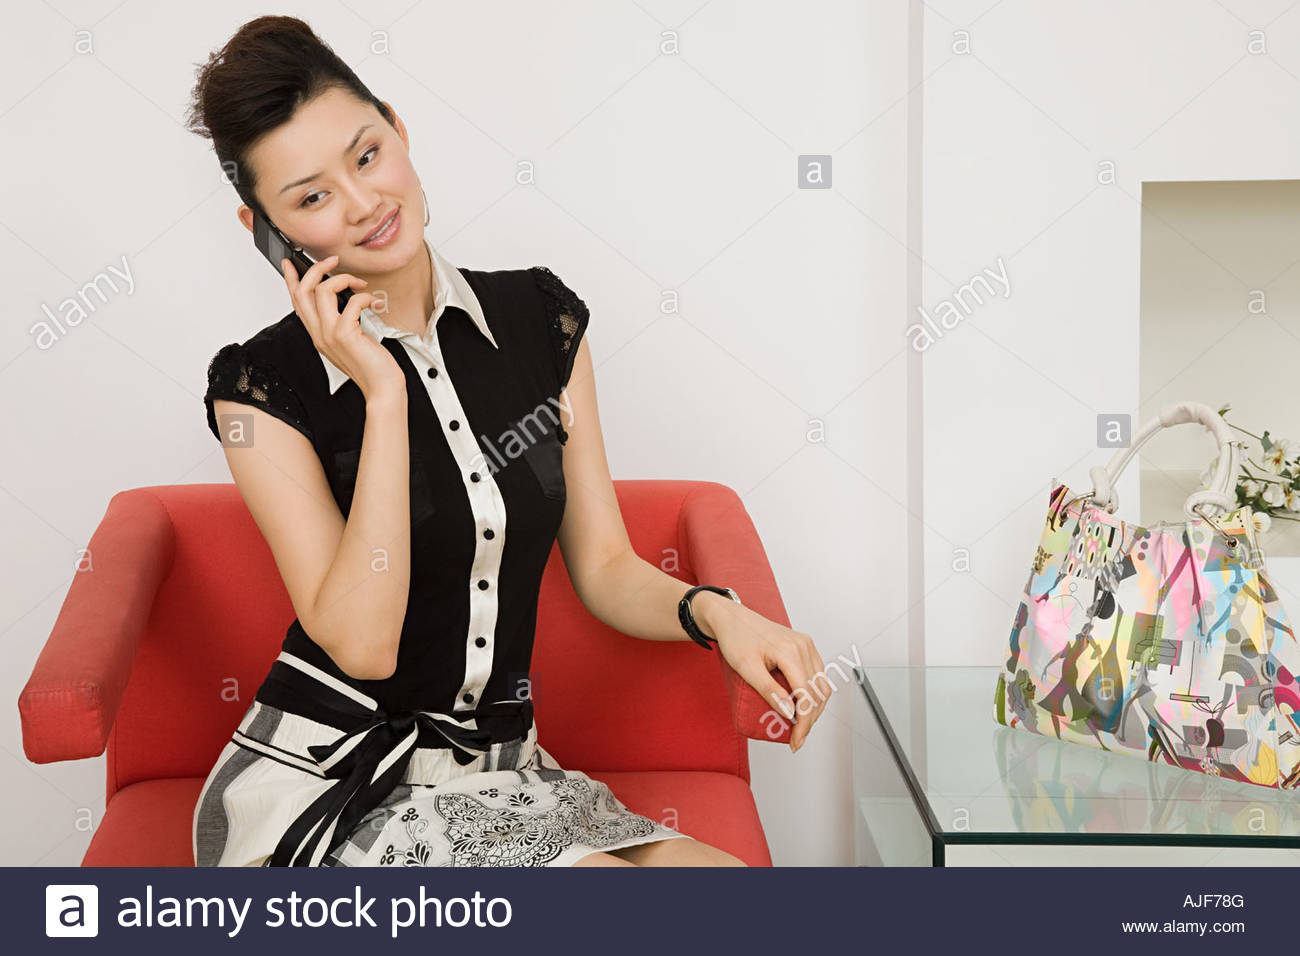 Young woman making a telephone call - Stock Image